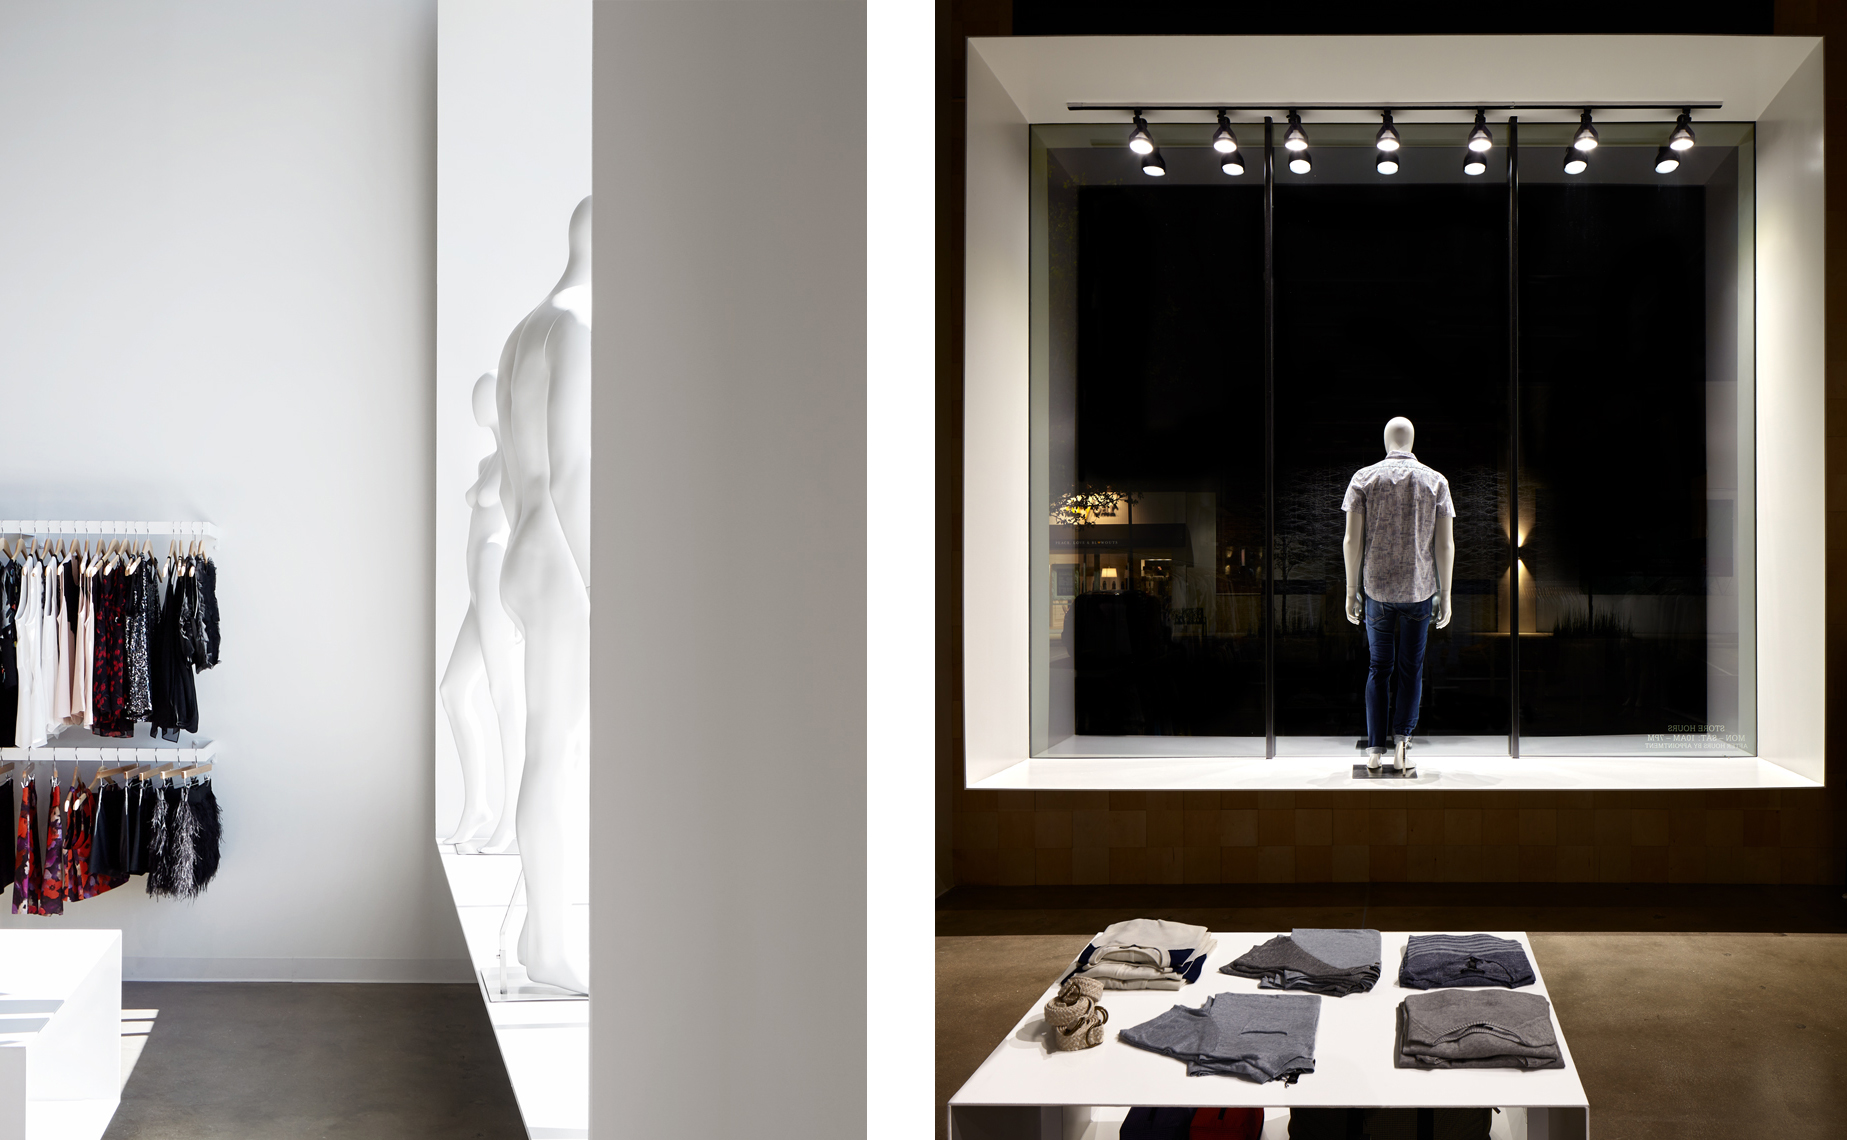 dror baldinger FAIA architectural photography of Pax & Parker high end retail clothing fort  worth texas